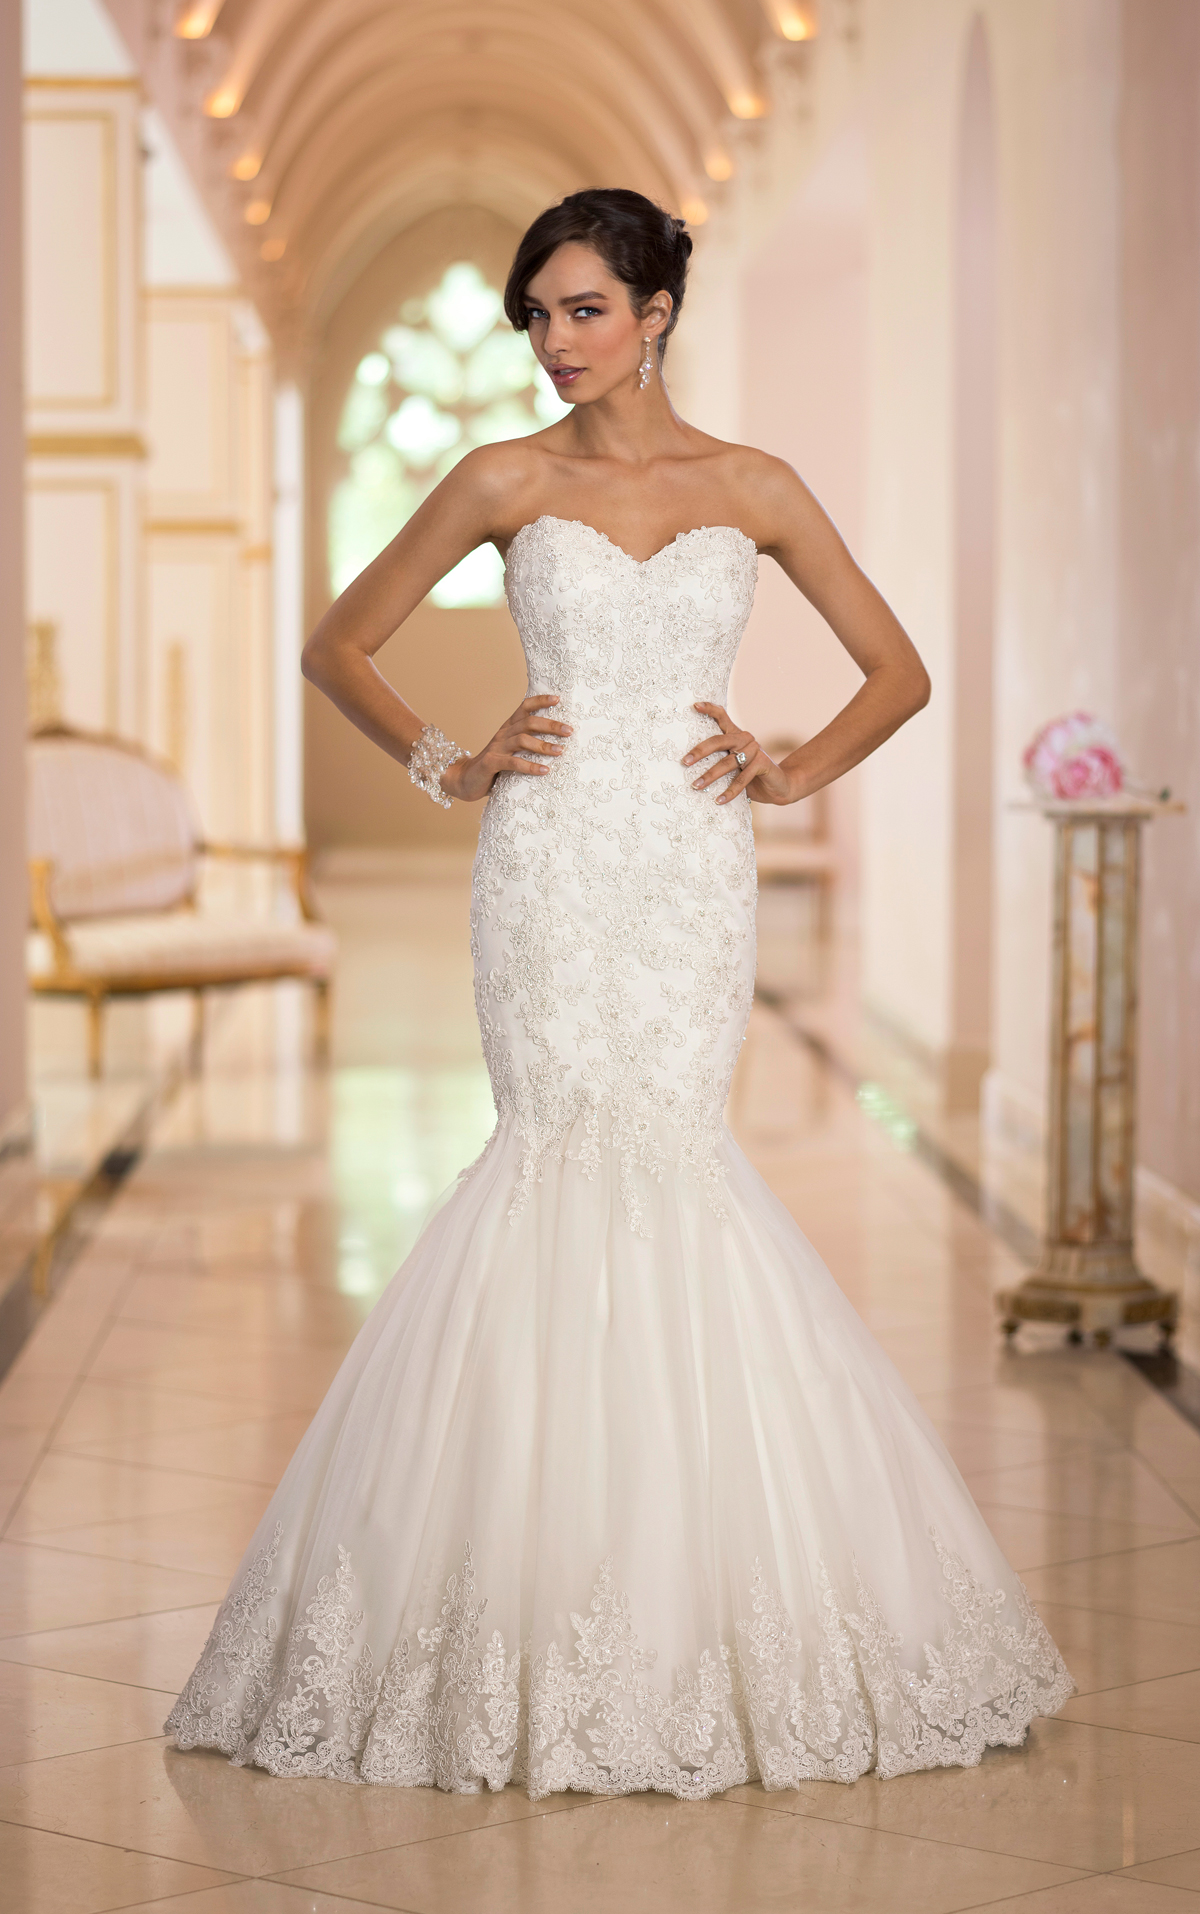 stella-york-wedding-dresses-2014-17-01152014